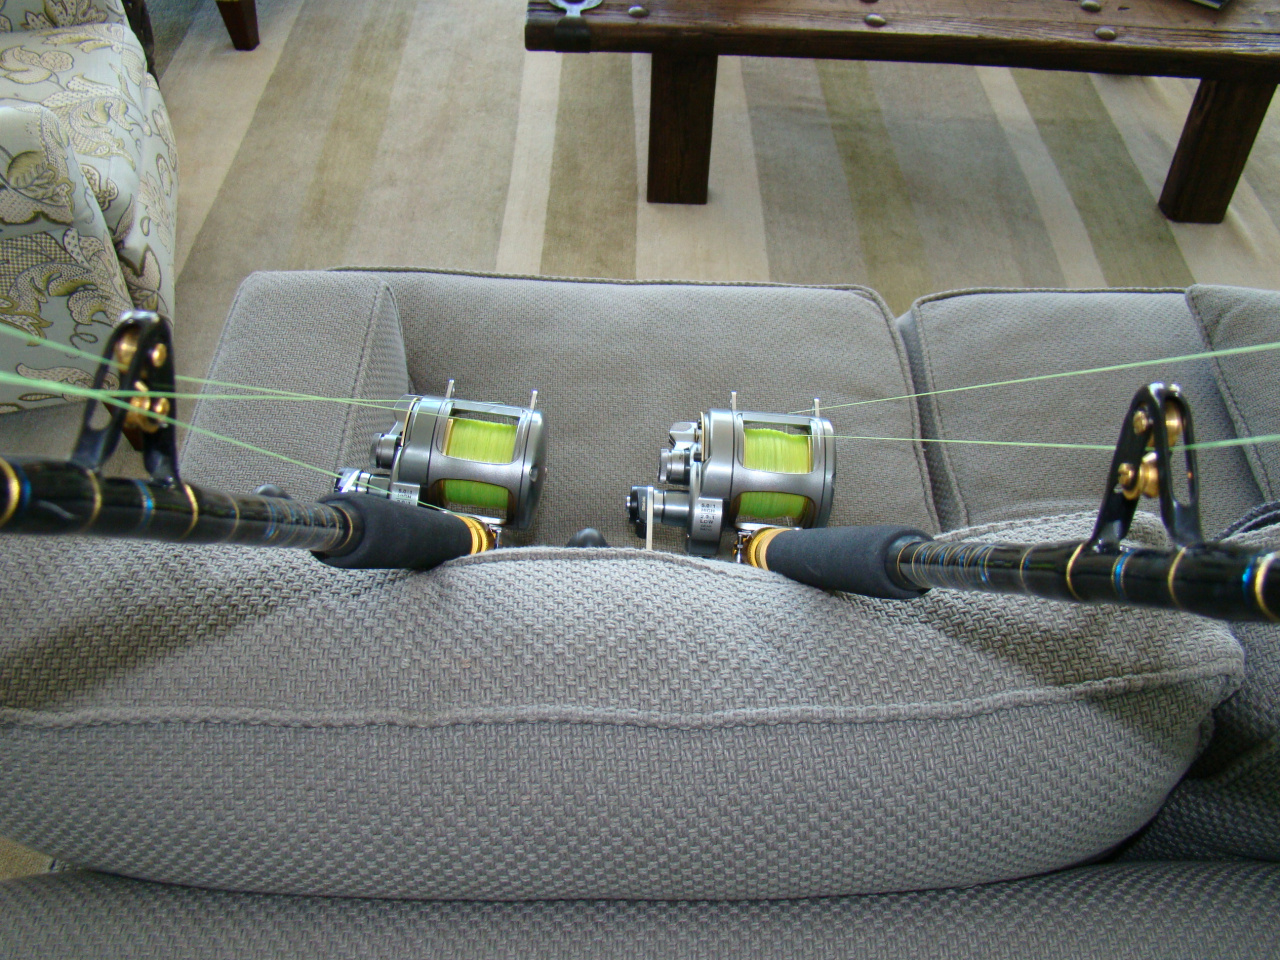 25f26adc2e8 ... Stuart 2 Shimano Tyrnos 20/2 Reels with Melton 6' Full Roller Rods, ...